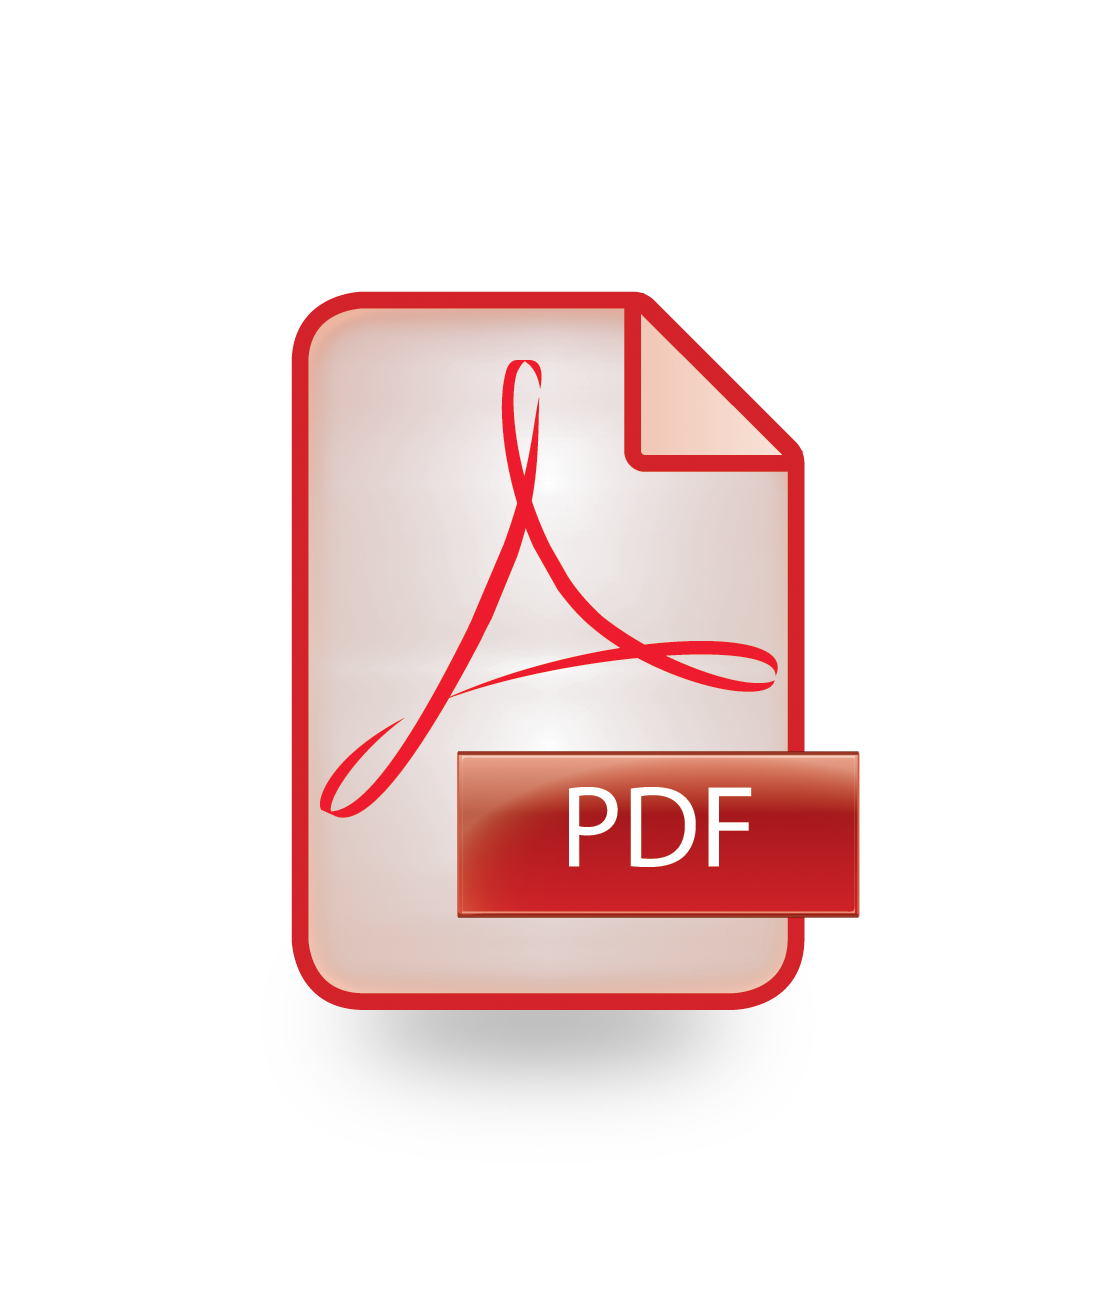 Png to pdf free. Vector icons and backgrounds